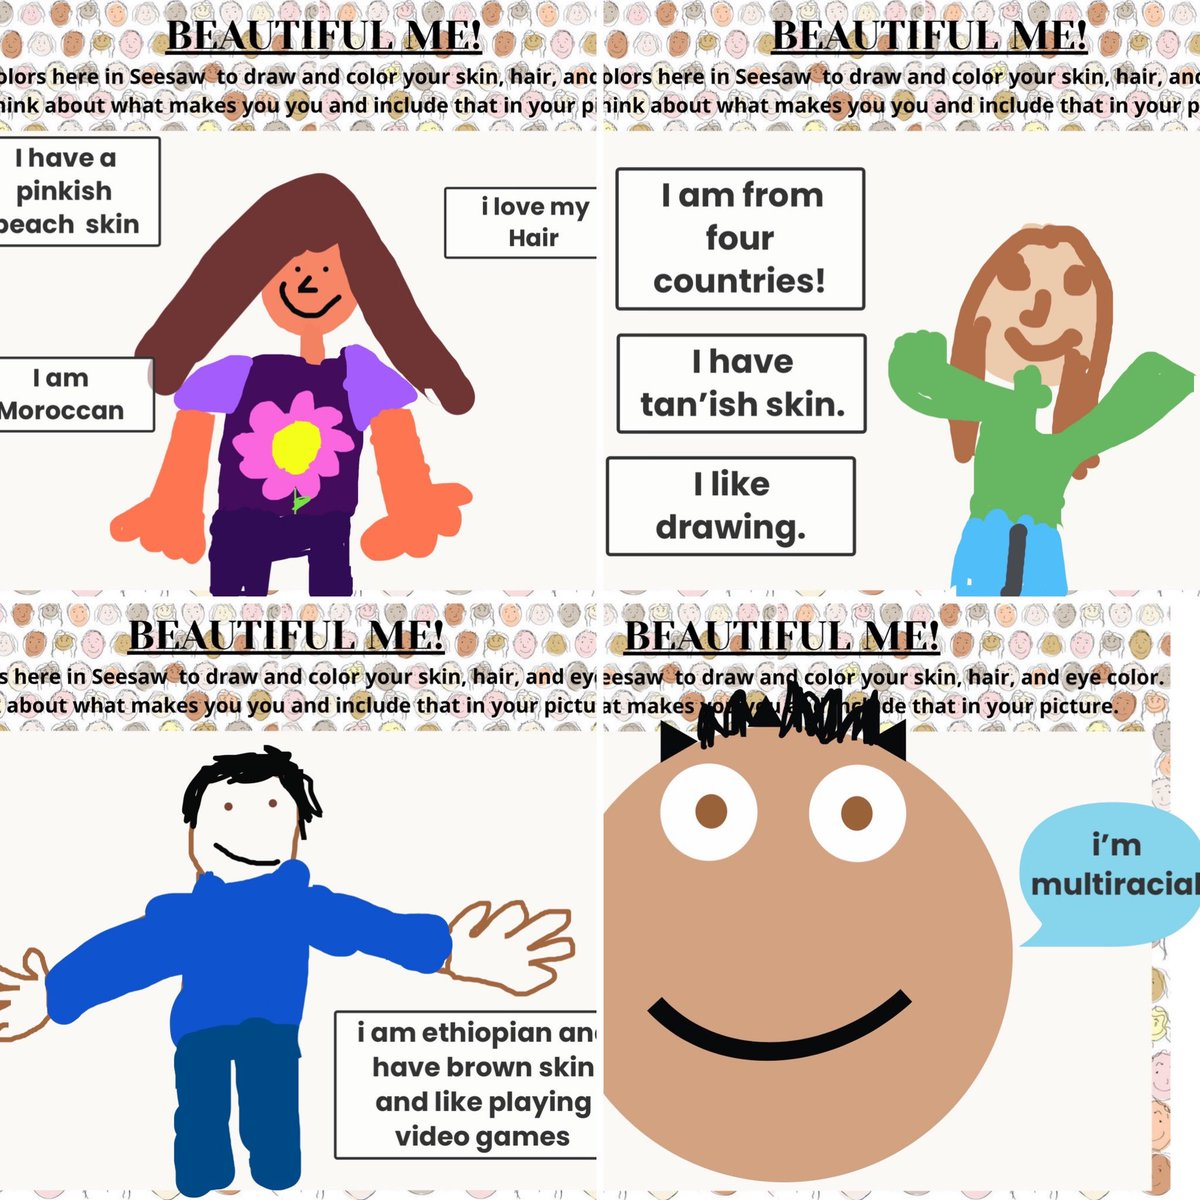 Students in grades K-2 have been talking about and exploring their own racial, ethnic, and cultural identities. We are using this awesome activity from <a target='_blank' href='http://twitter.com/Seesaw'>@Seesaw</a> along with a video from <a target='_blank' href='http://search.twitter.com/search?q=ComingTogether'><a target='_blank' href='https://twitter.com/hashtag/ComingTogether?src=hash'>#ComingTogether</a></a> with Wes. <a target='_blank' href='http://twitter.com/longbranch_es'>@longbranch_es</a> <a target='_blank' href='https://t.co/F8BvczbOEi'>https://t.co/F8BvczbOEi</a> <a target='_blank' href='https://t.co/e5iGA0NWXe'>https://t.co/e5iGA0NWXe</a>